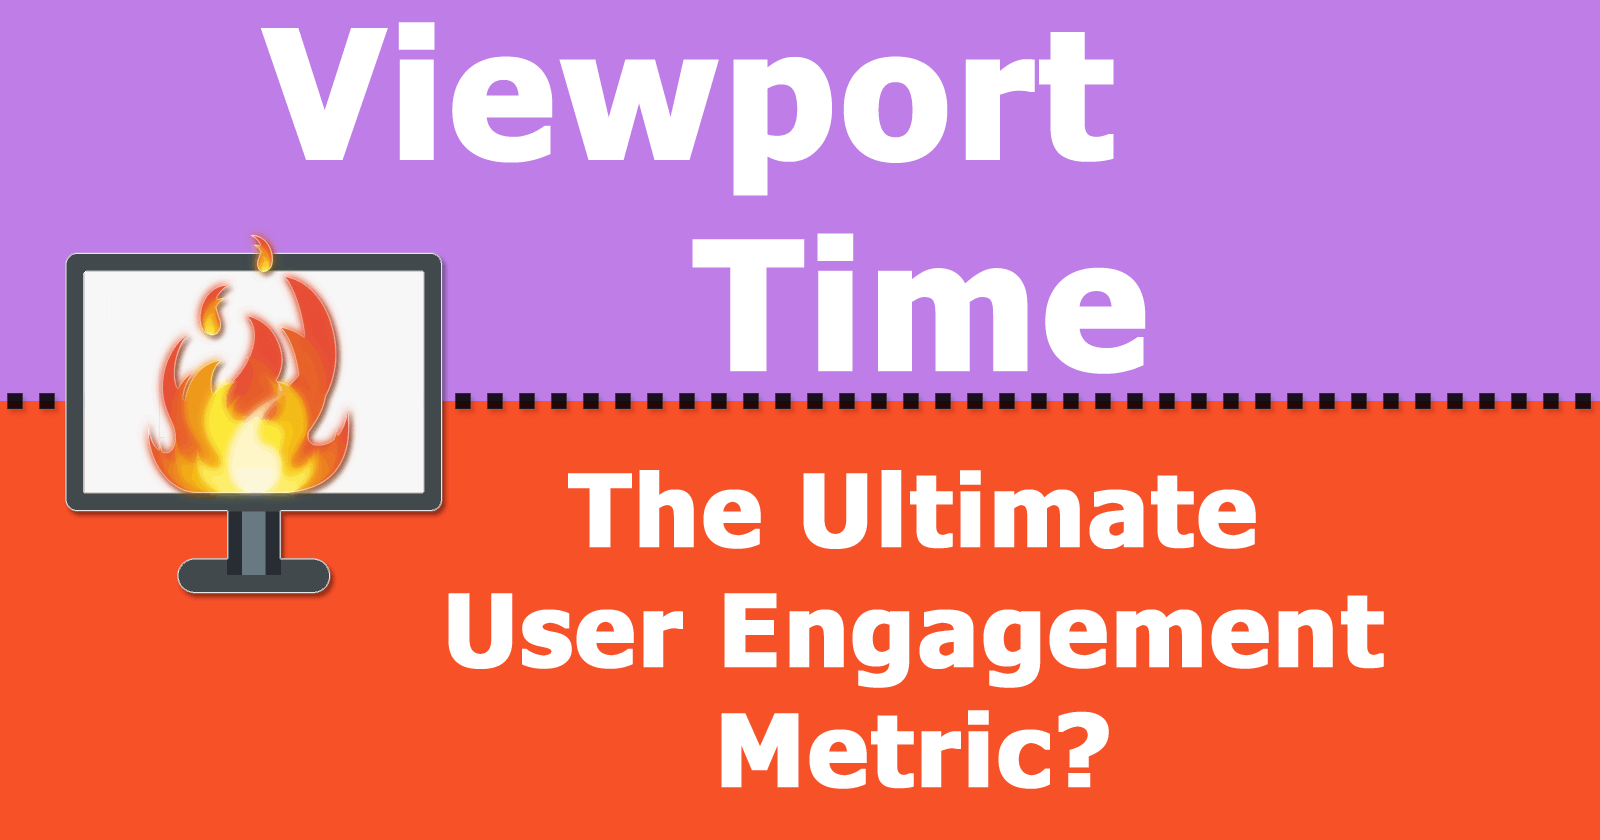 Viewport Time: The Ultimate User Engagement Metric? by @martinibuster